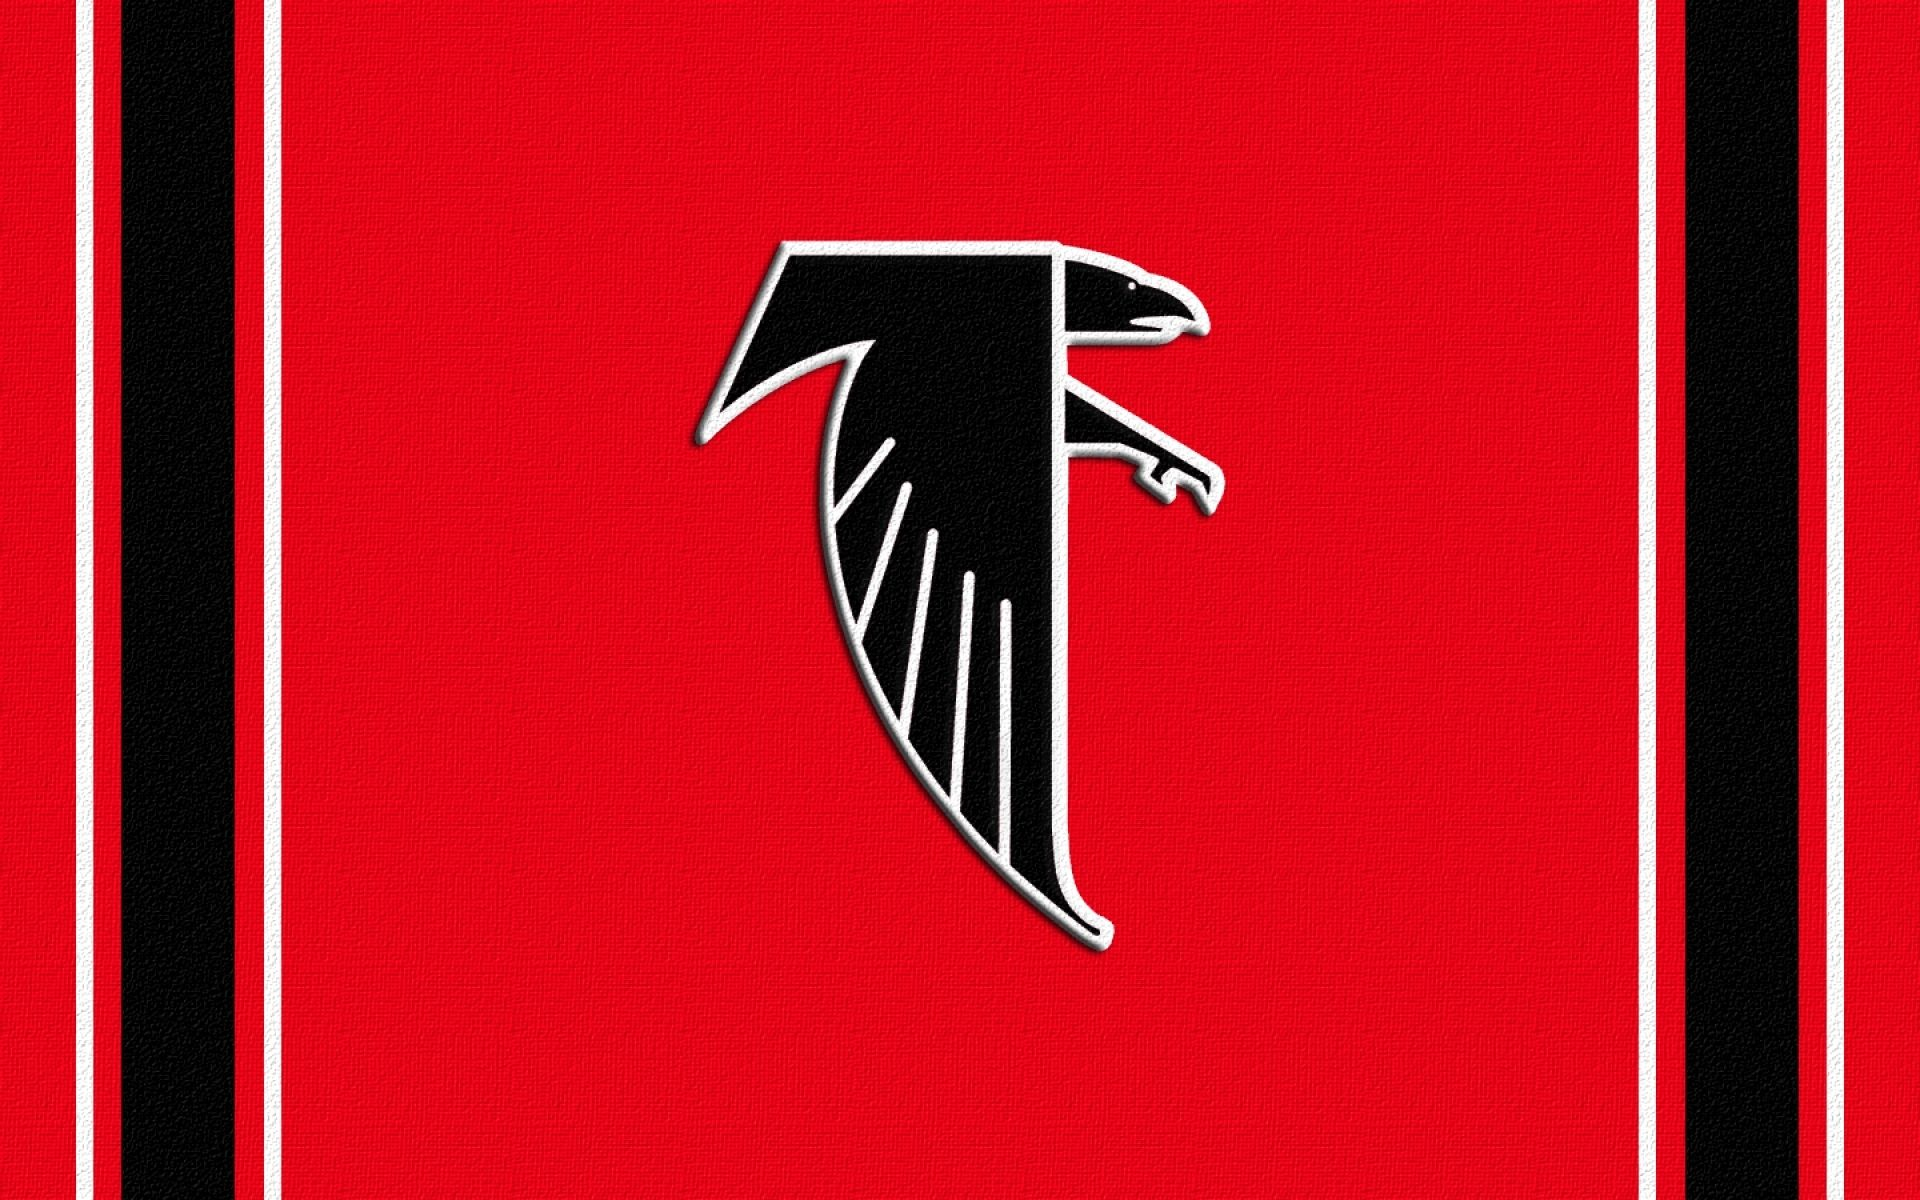 Falcons Iphone Wallpaper: Top Free Falcons Backgrounds